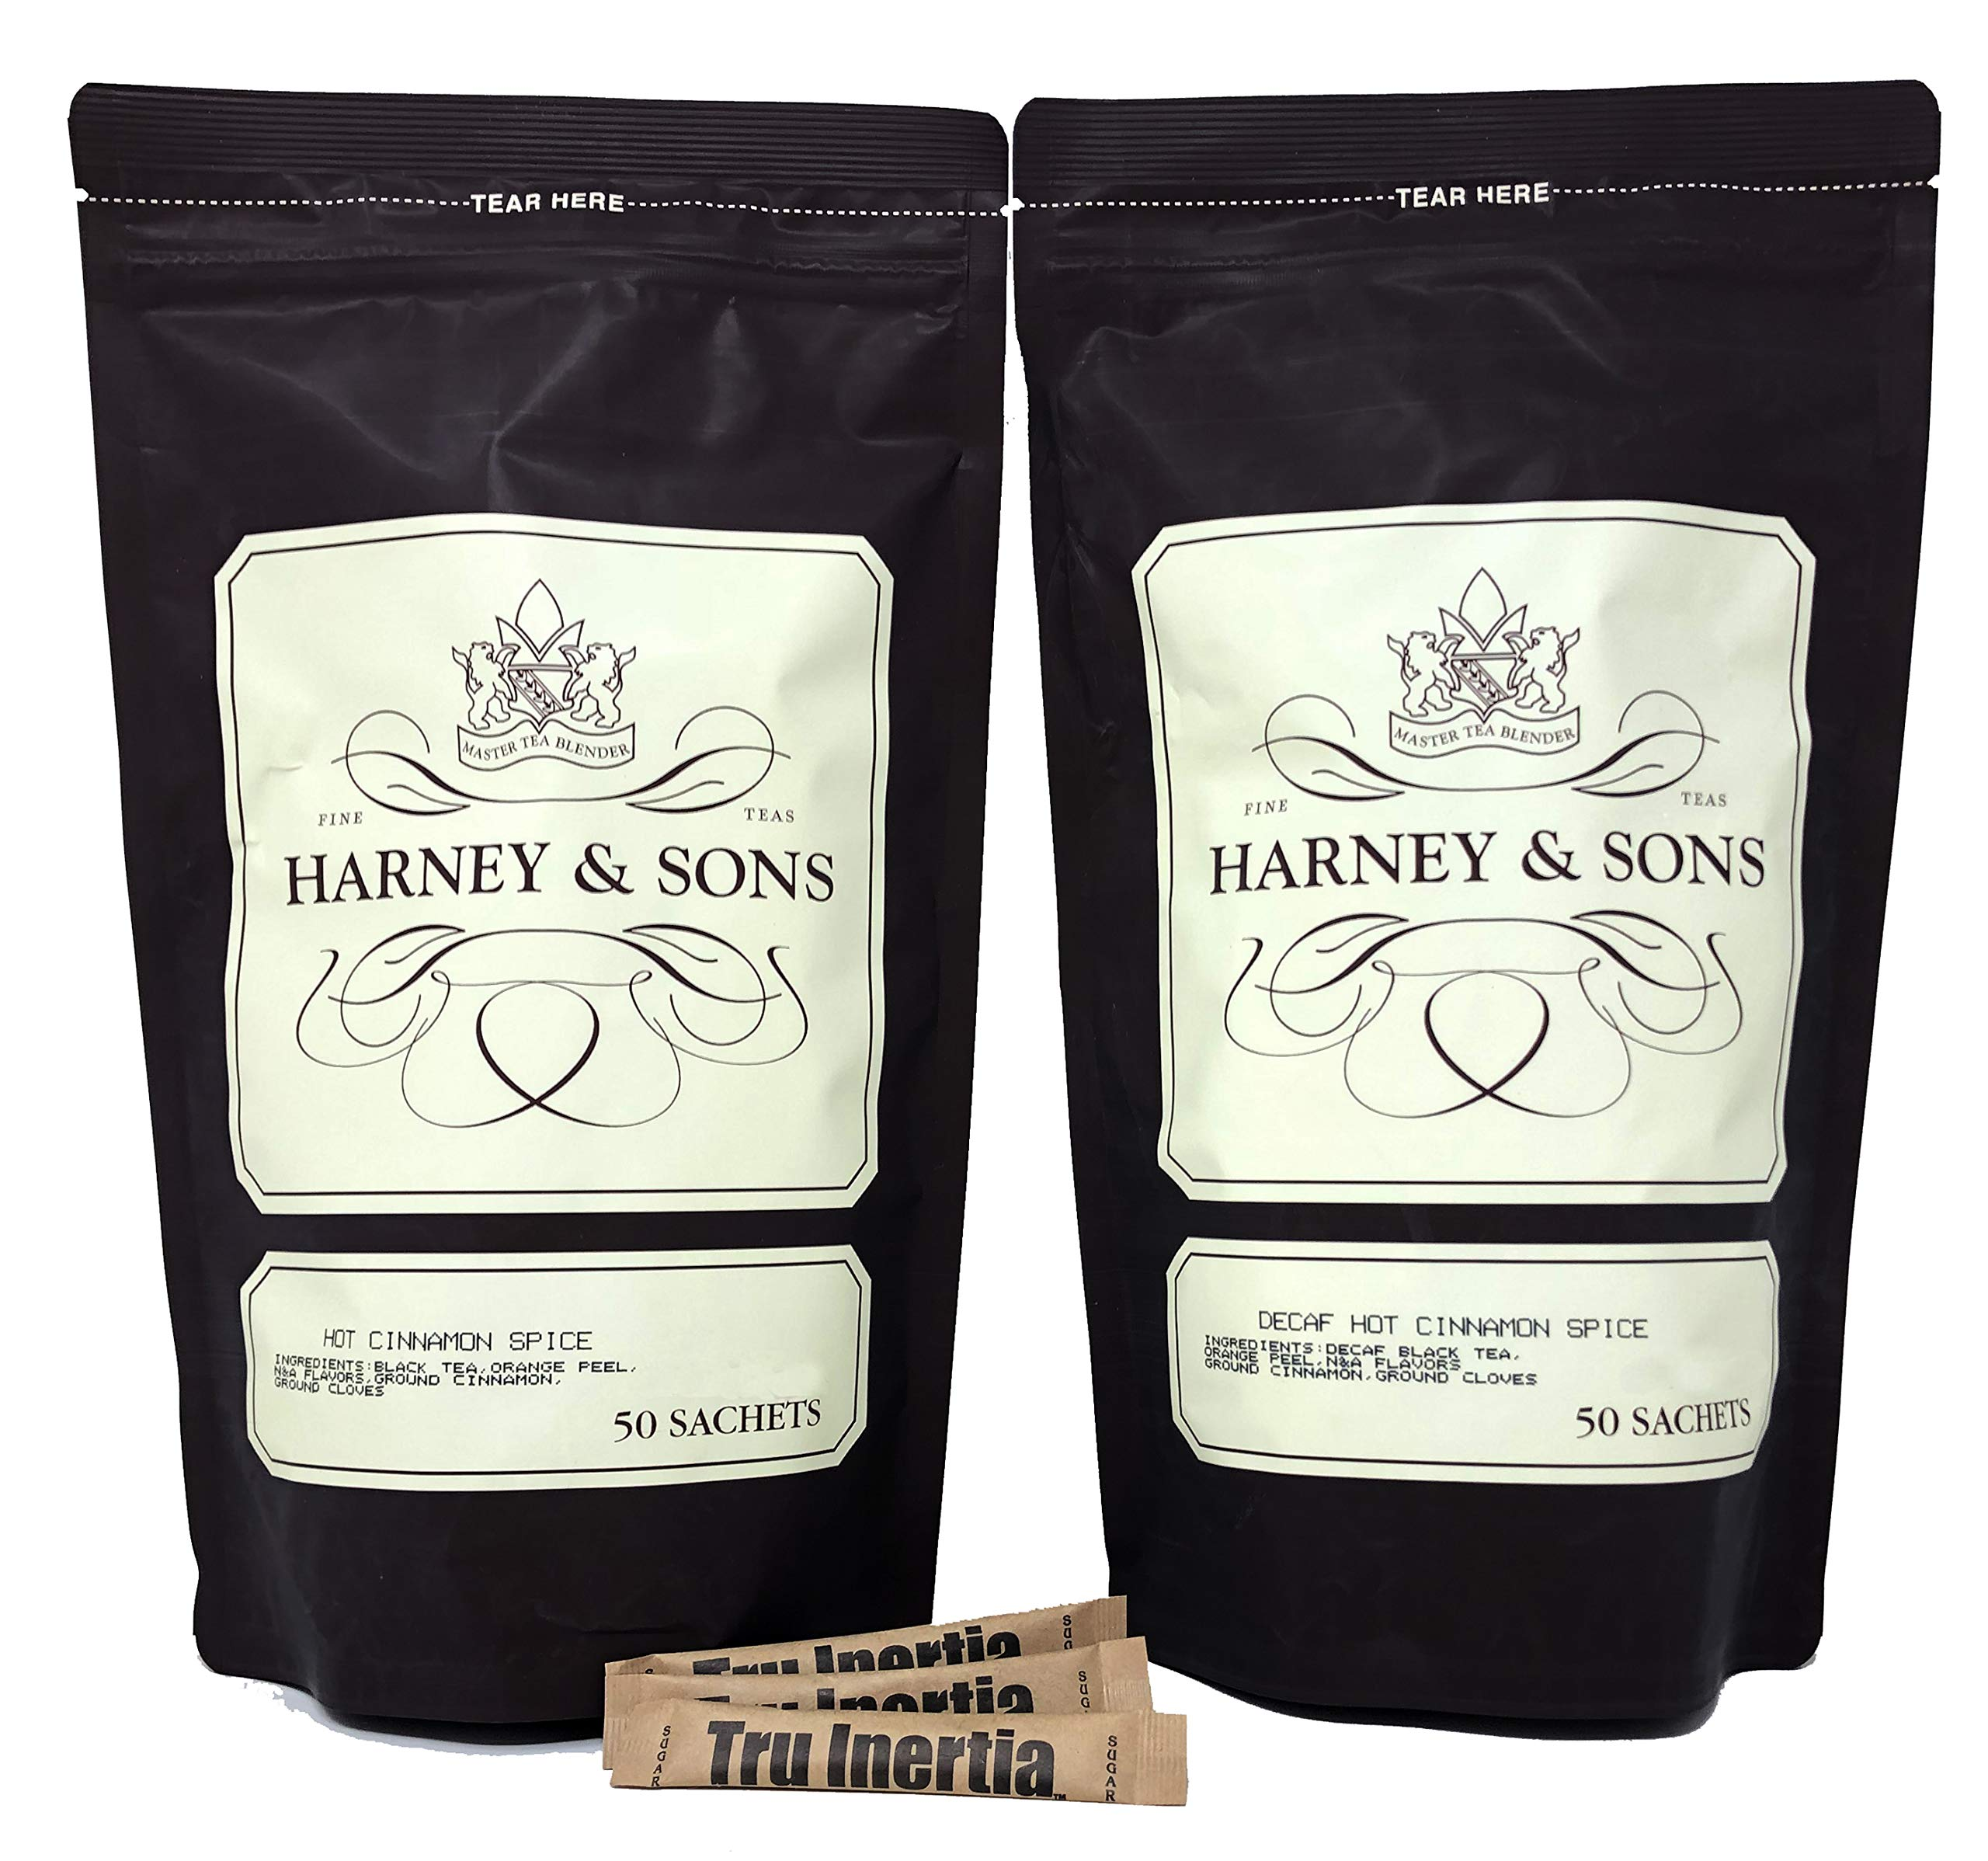 Harney & Sons Hot Cinnamon and Decaf Hot Cinnamon 50 Count Tea Sachet Bags 2 Pack - 1 Bags of 50 Sachets of Each Tea - With 3 Tru Inertia Raw Cane Sugar Tubes